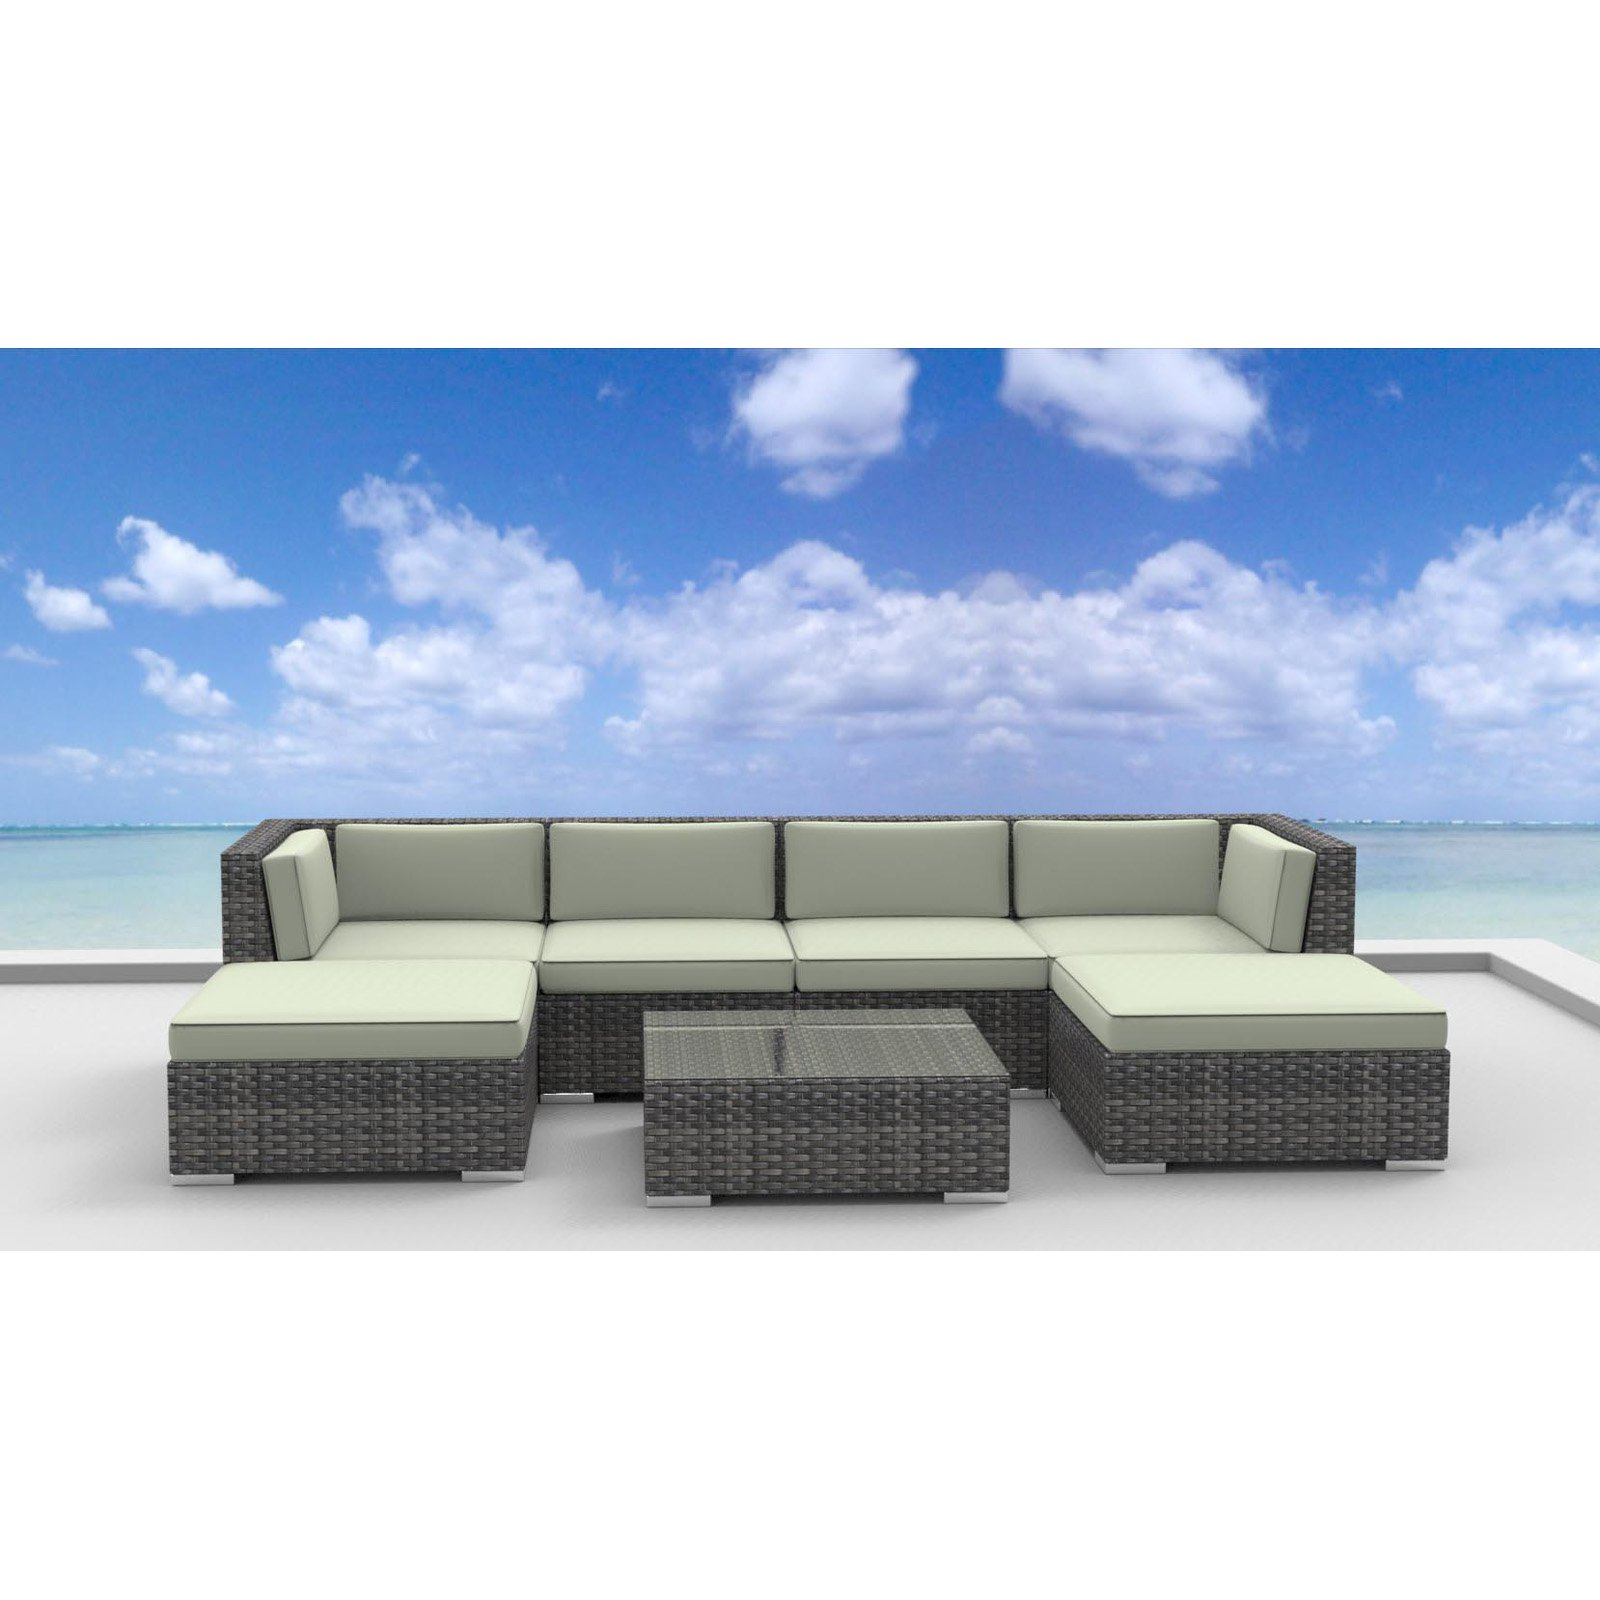 Urban Furnishing Maui 7 Piece Outdoor Wicker Patio Furniture Set   Walmart .com